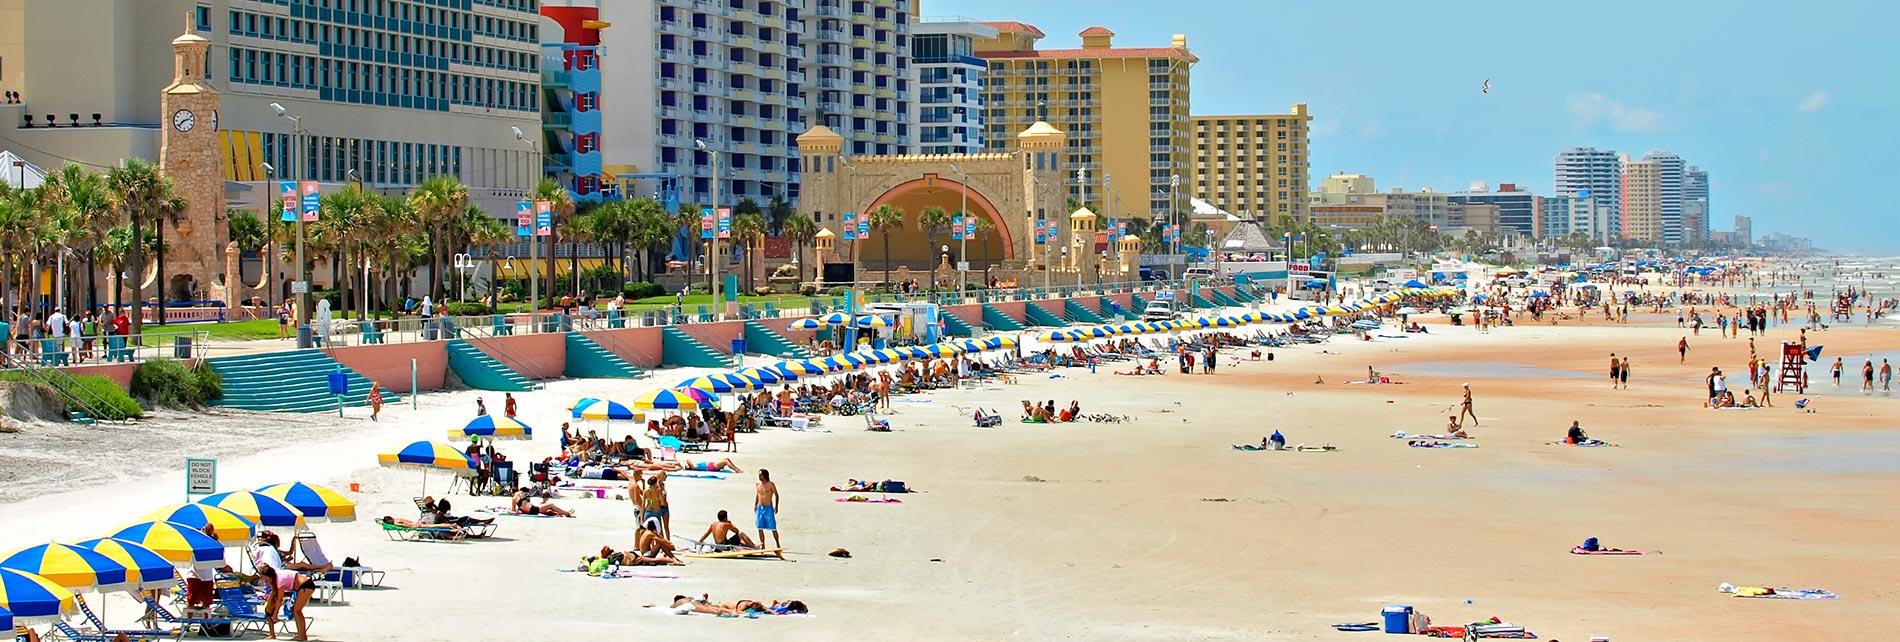 Best Places In Daytona Beach The Beaches World